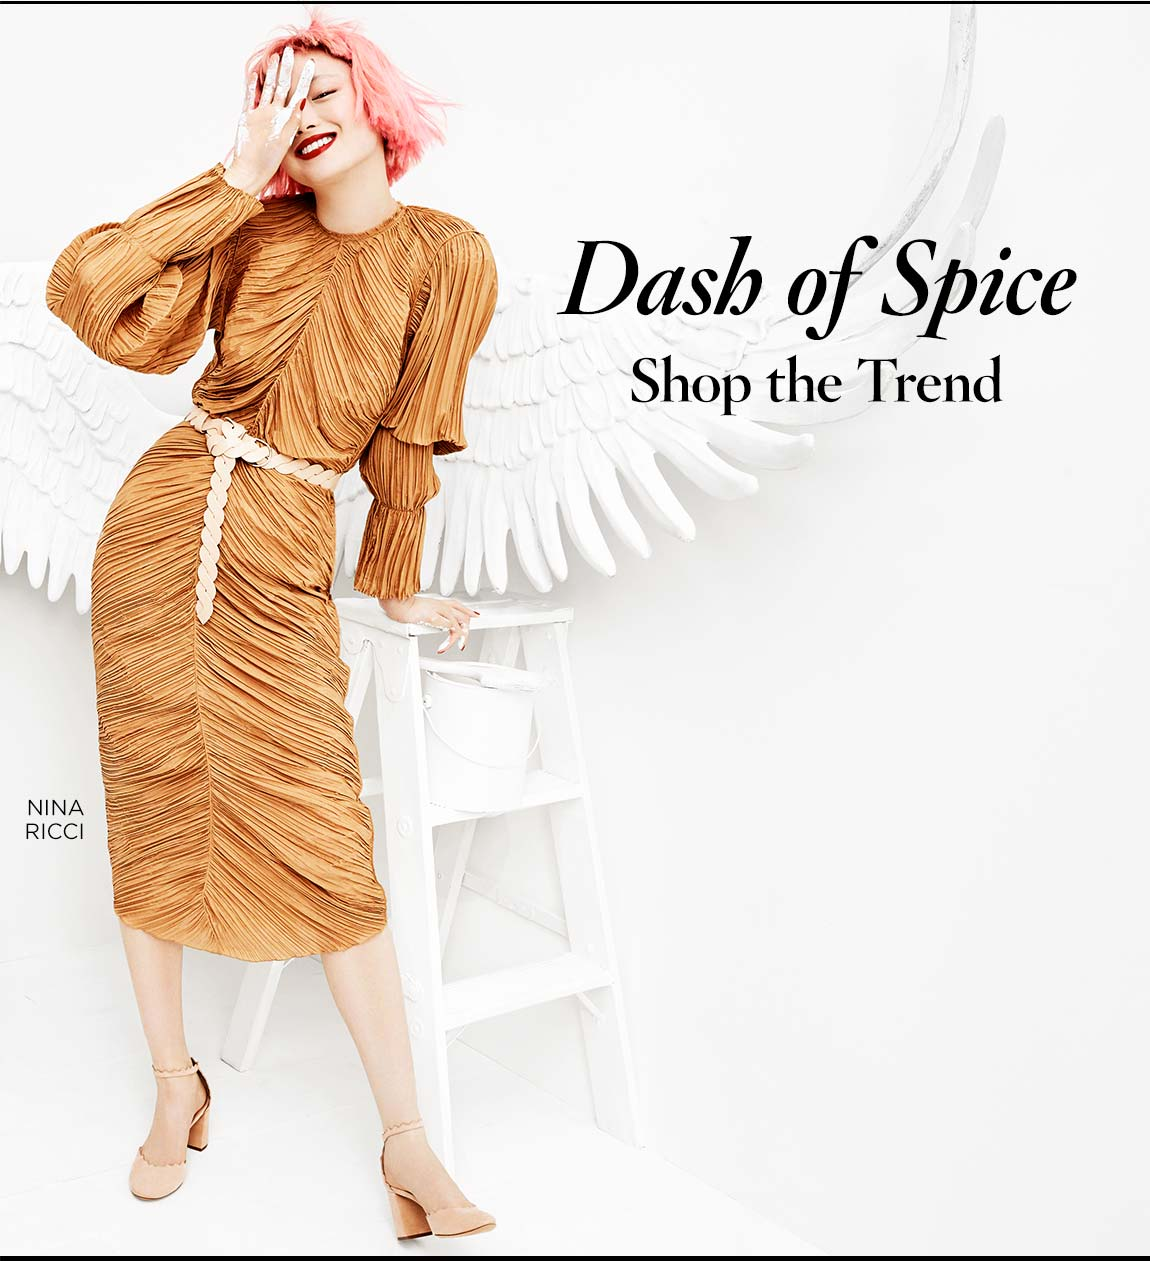 A dash of spice video